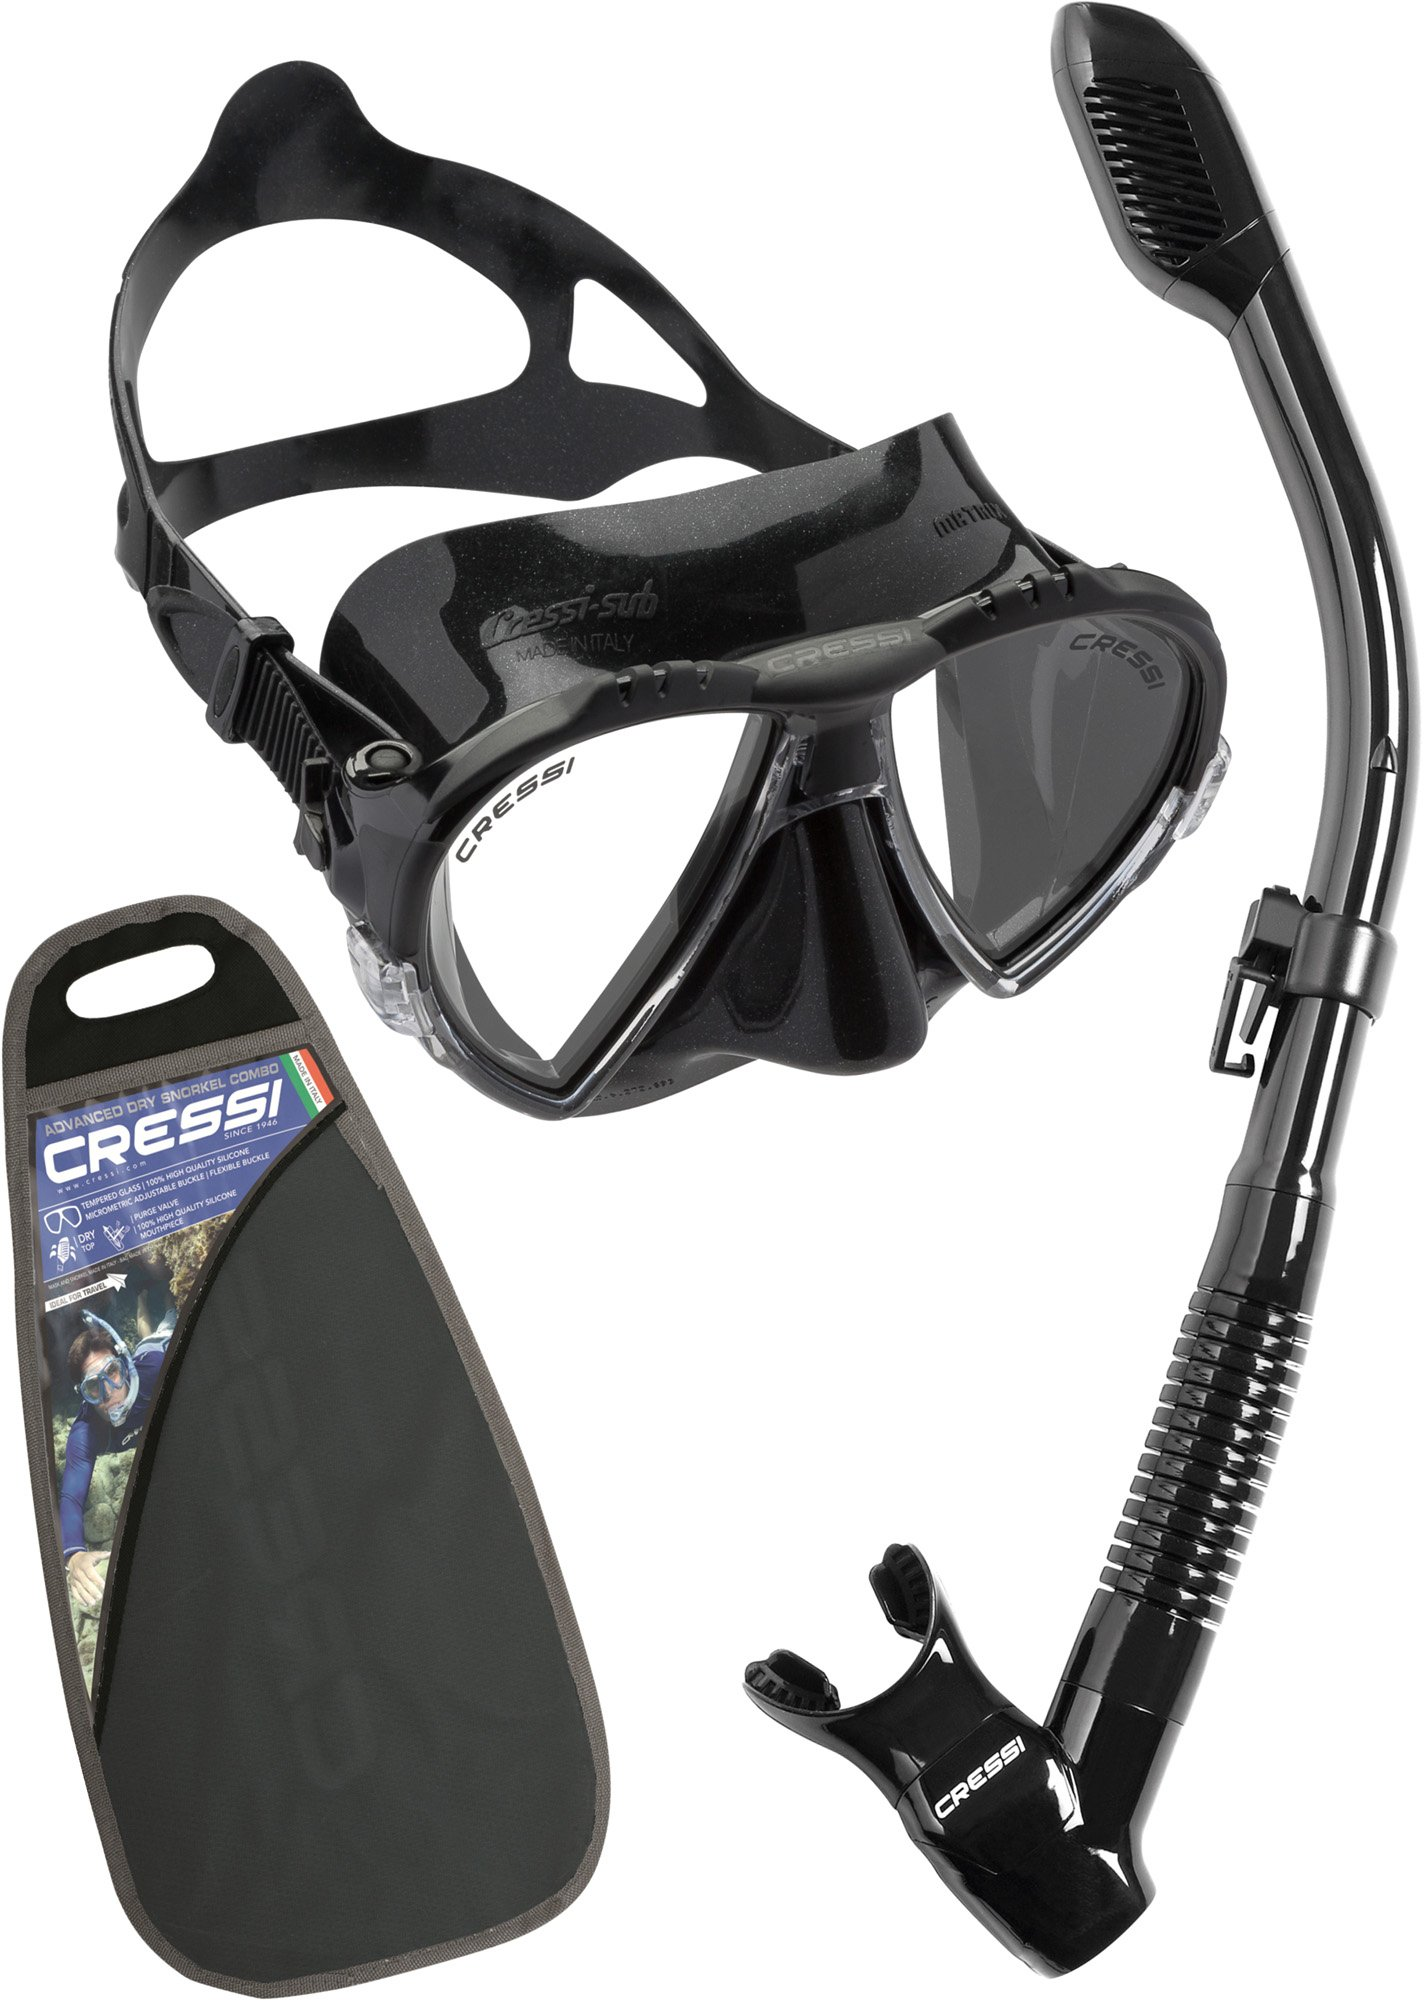 Cressi Matrix & Supernova Dry, black/black by Cressi